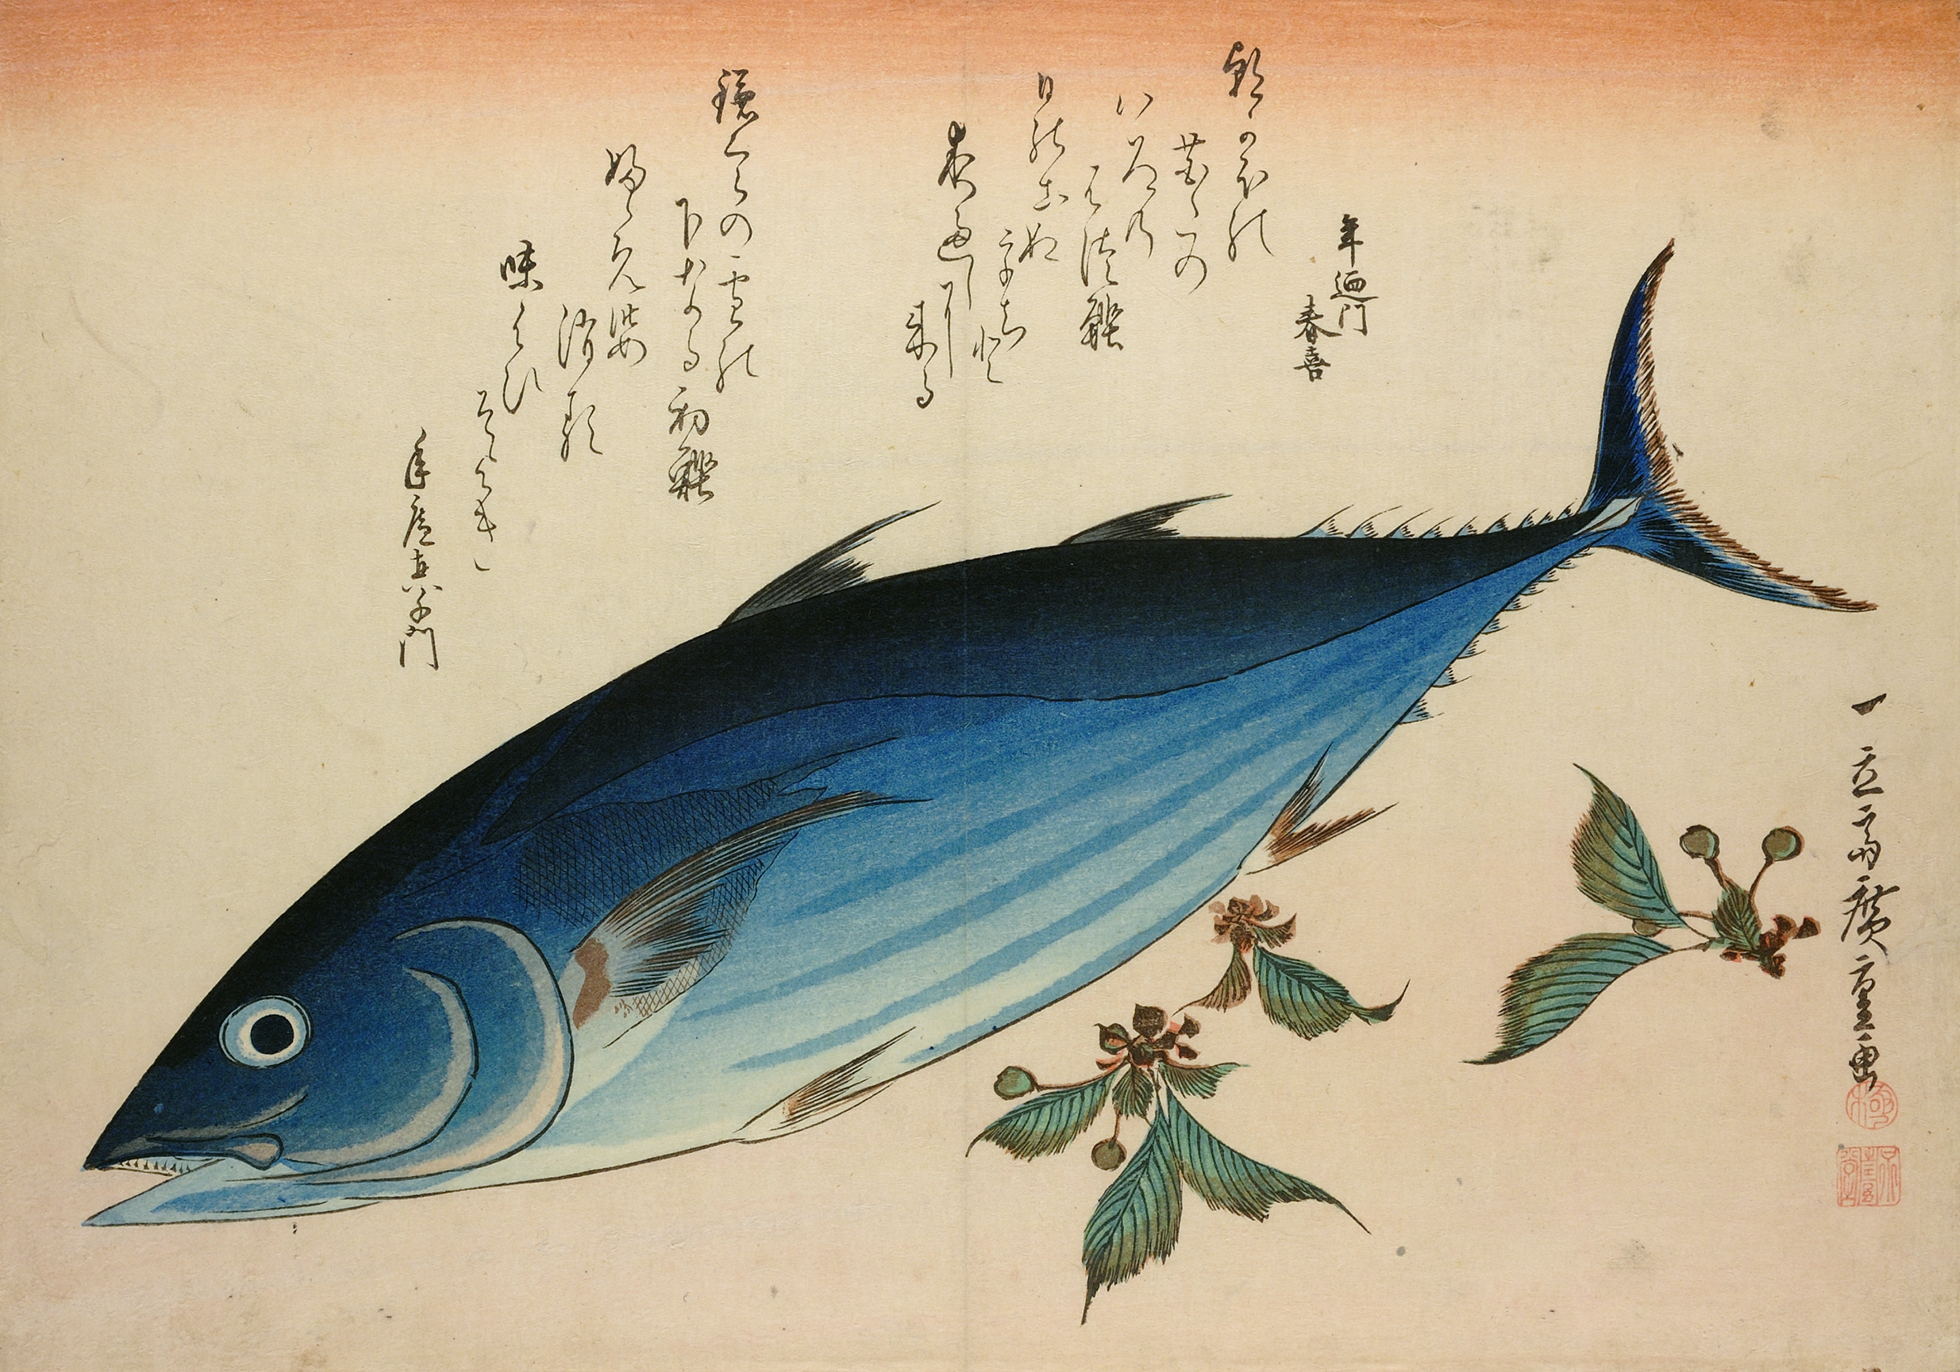 A colour woodblock print of a blue and silver fish, possibly katsuo, bonito or skipjack tuna with sprigs of saxifage and a poem inscribed above.